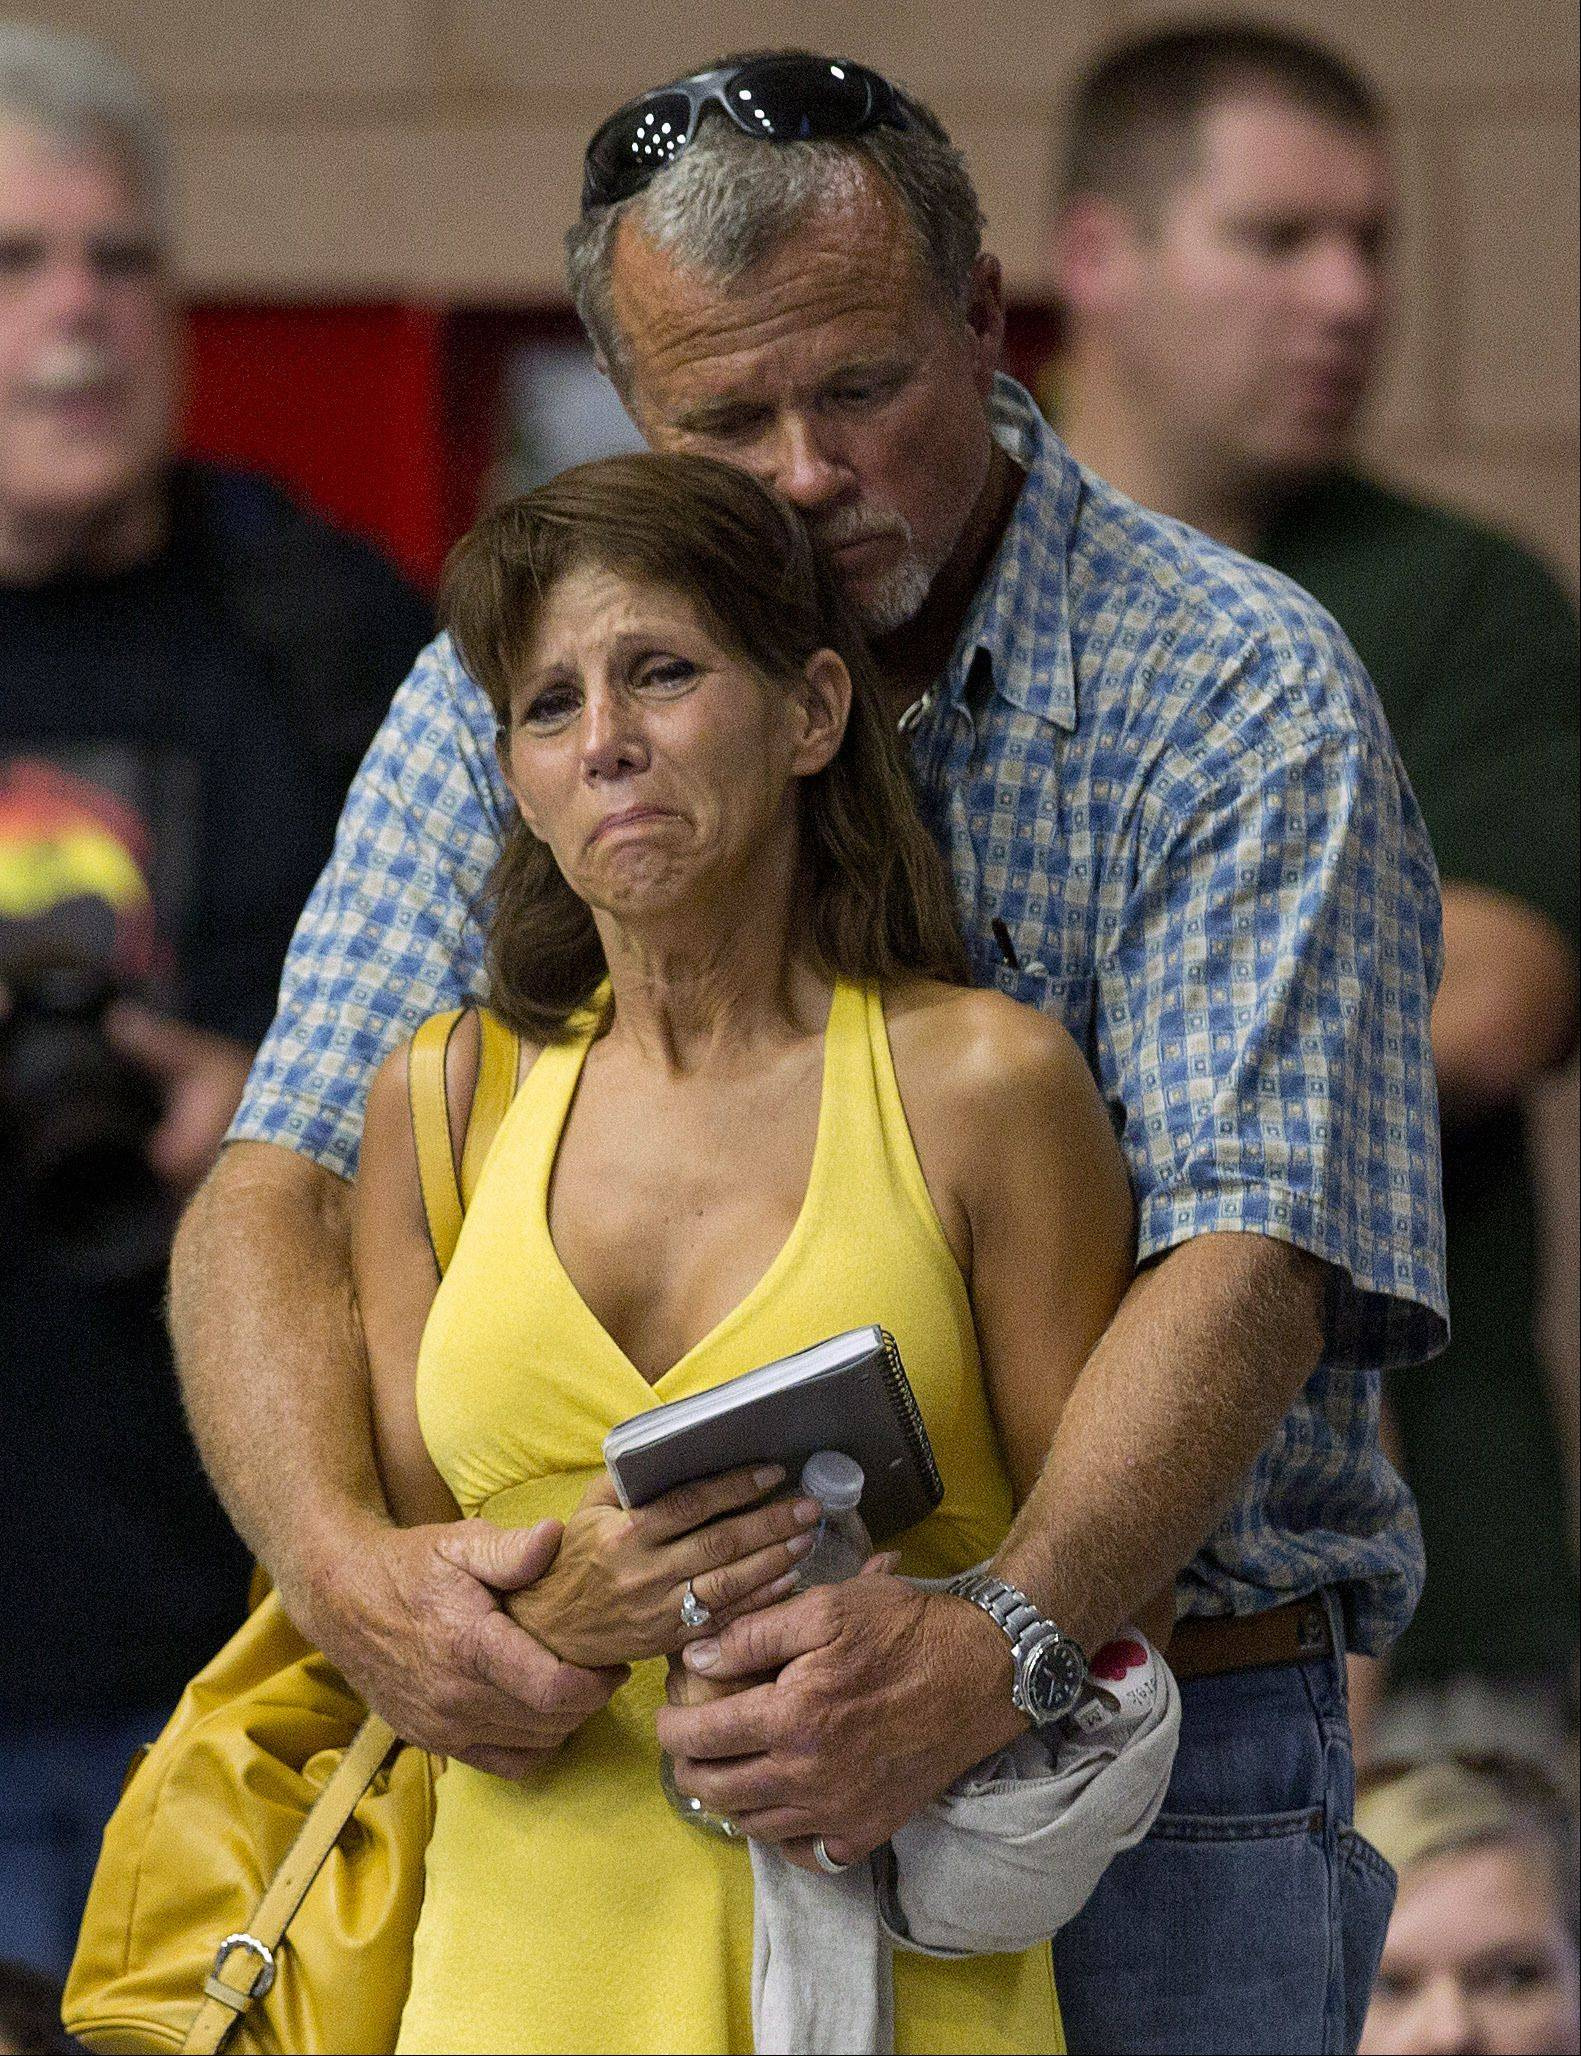 Marsha McKee and Stanley Nesheim react during a memorial service for 19 firefighters of the Granite Mountain Hotshot Crew, Monday, July 1, 2013 in Prescott, Ariz. McKee is the mother of one of the Hotshots who were killed .